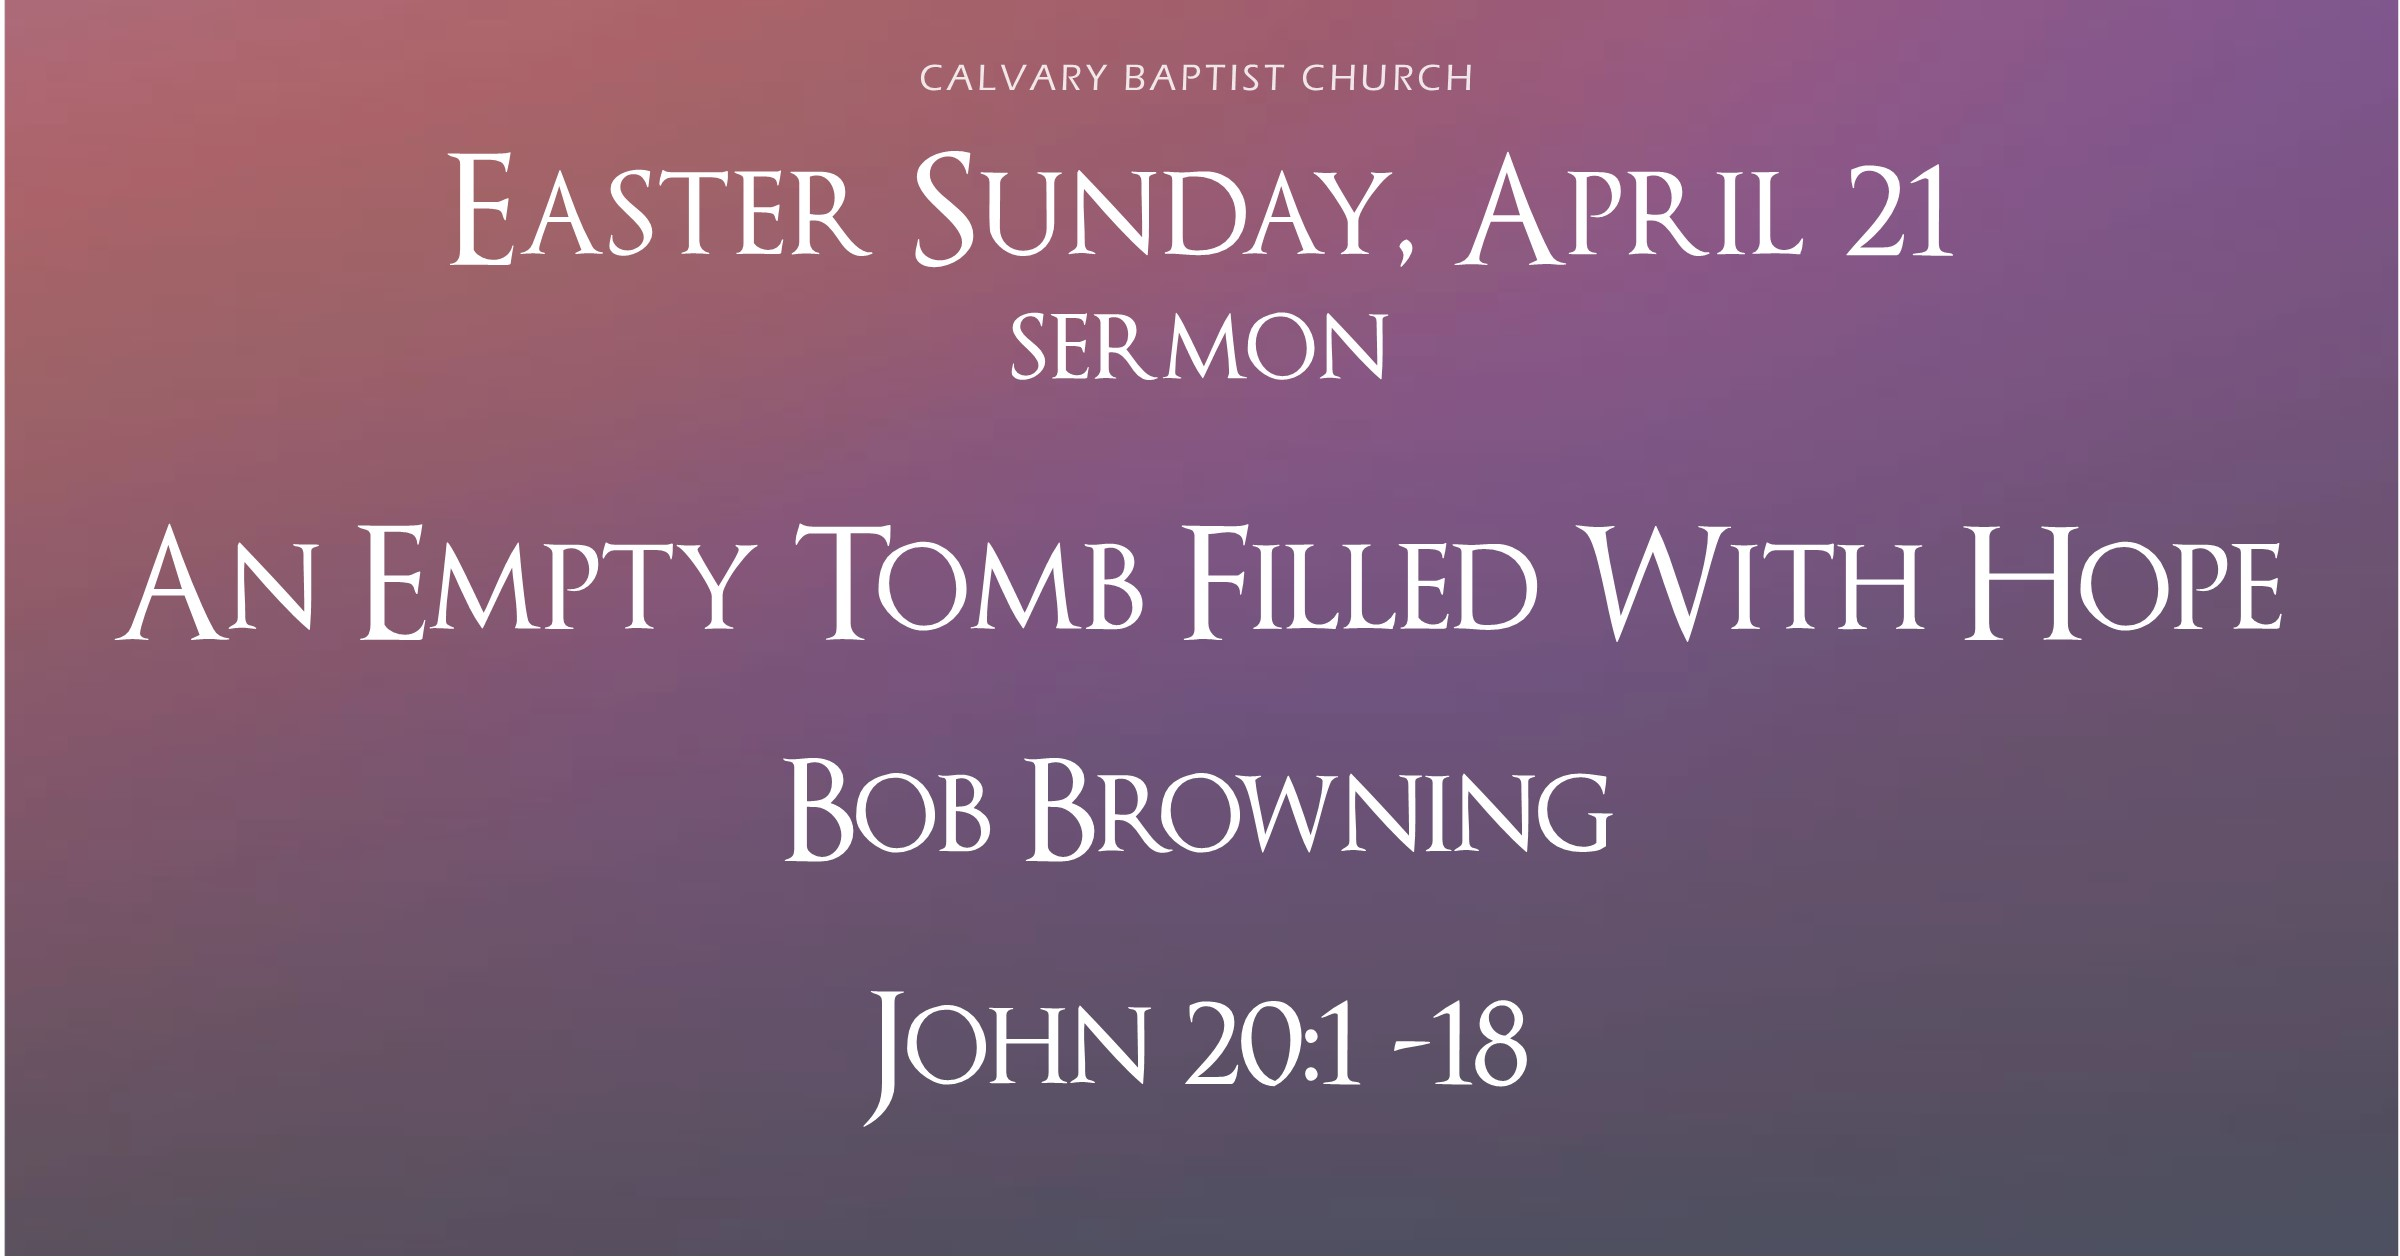 Easter Sunday sermon fb image 042119.jpg